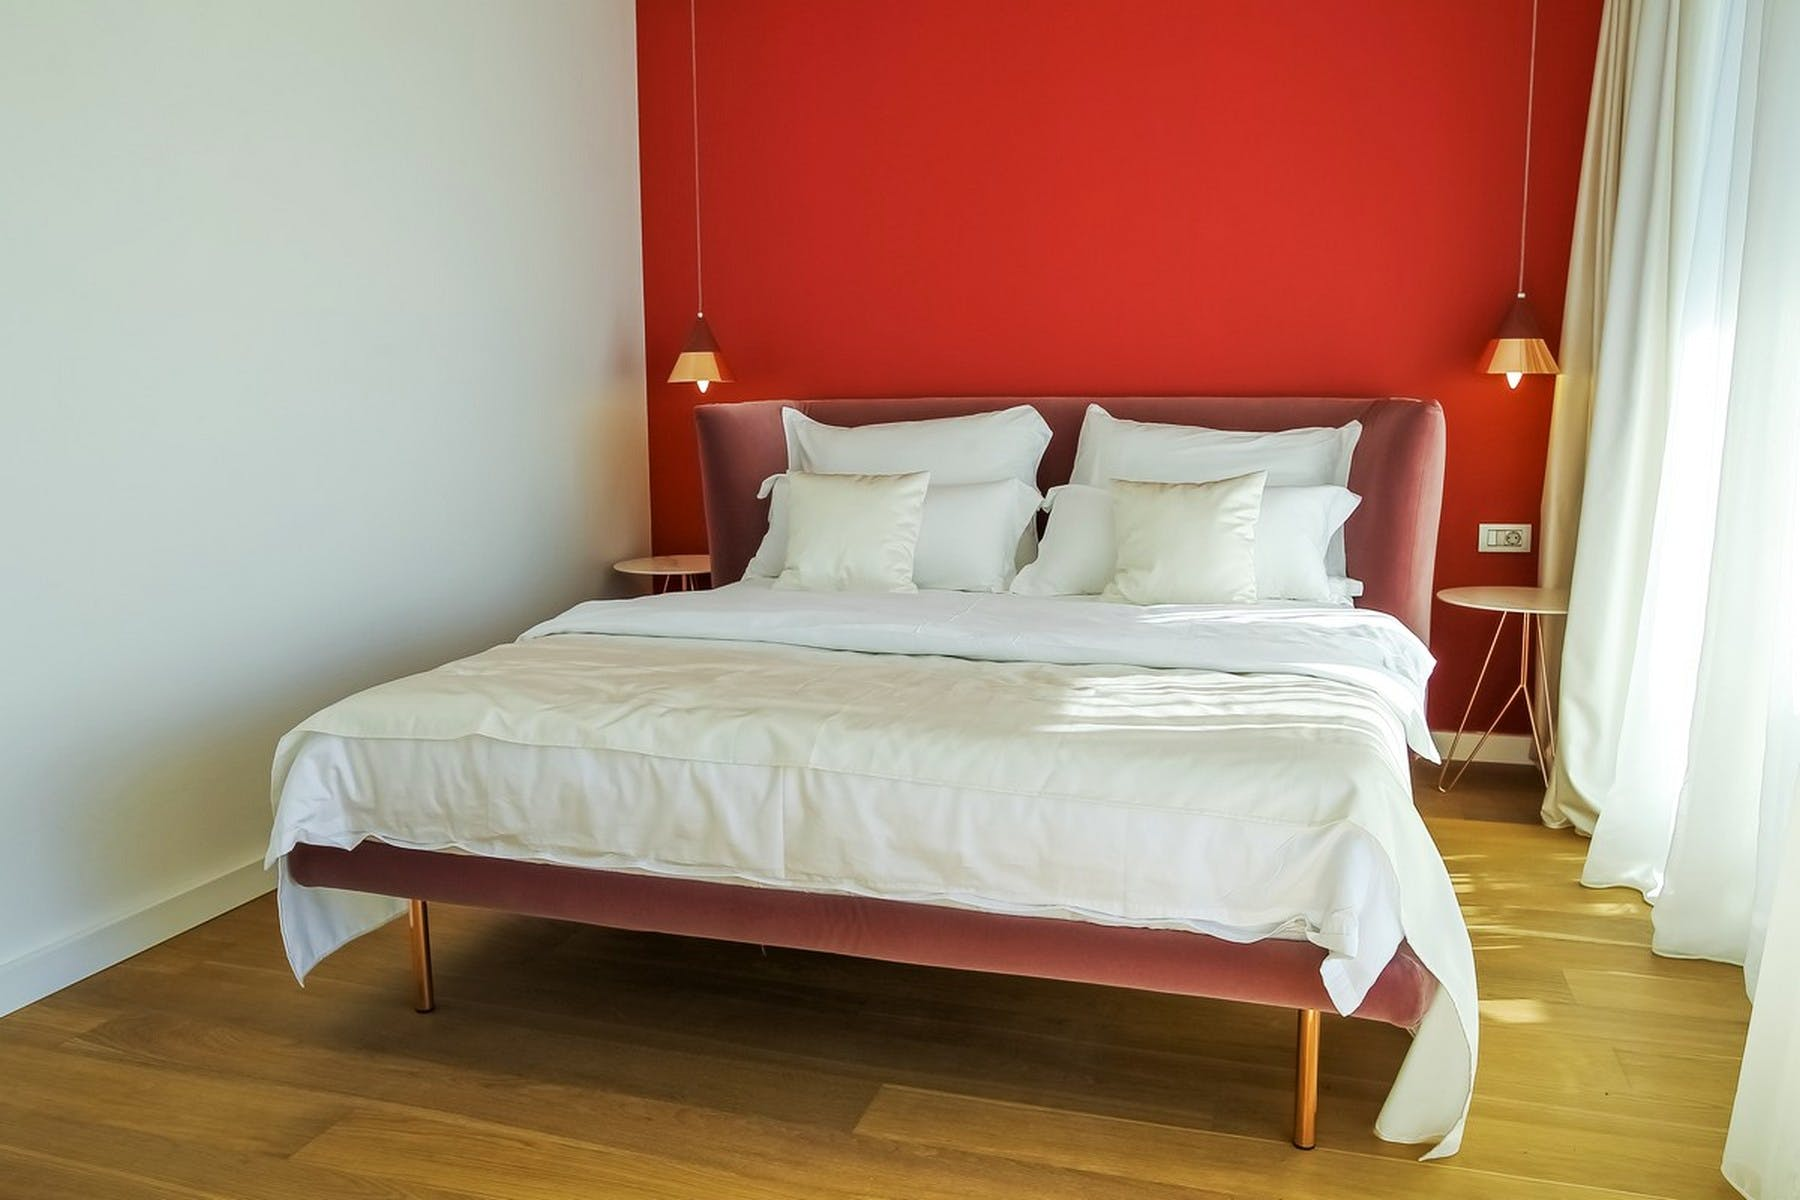 Double bedroom with a red wall